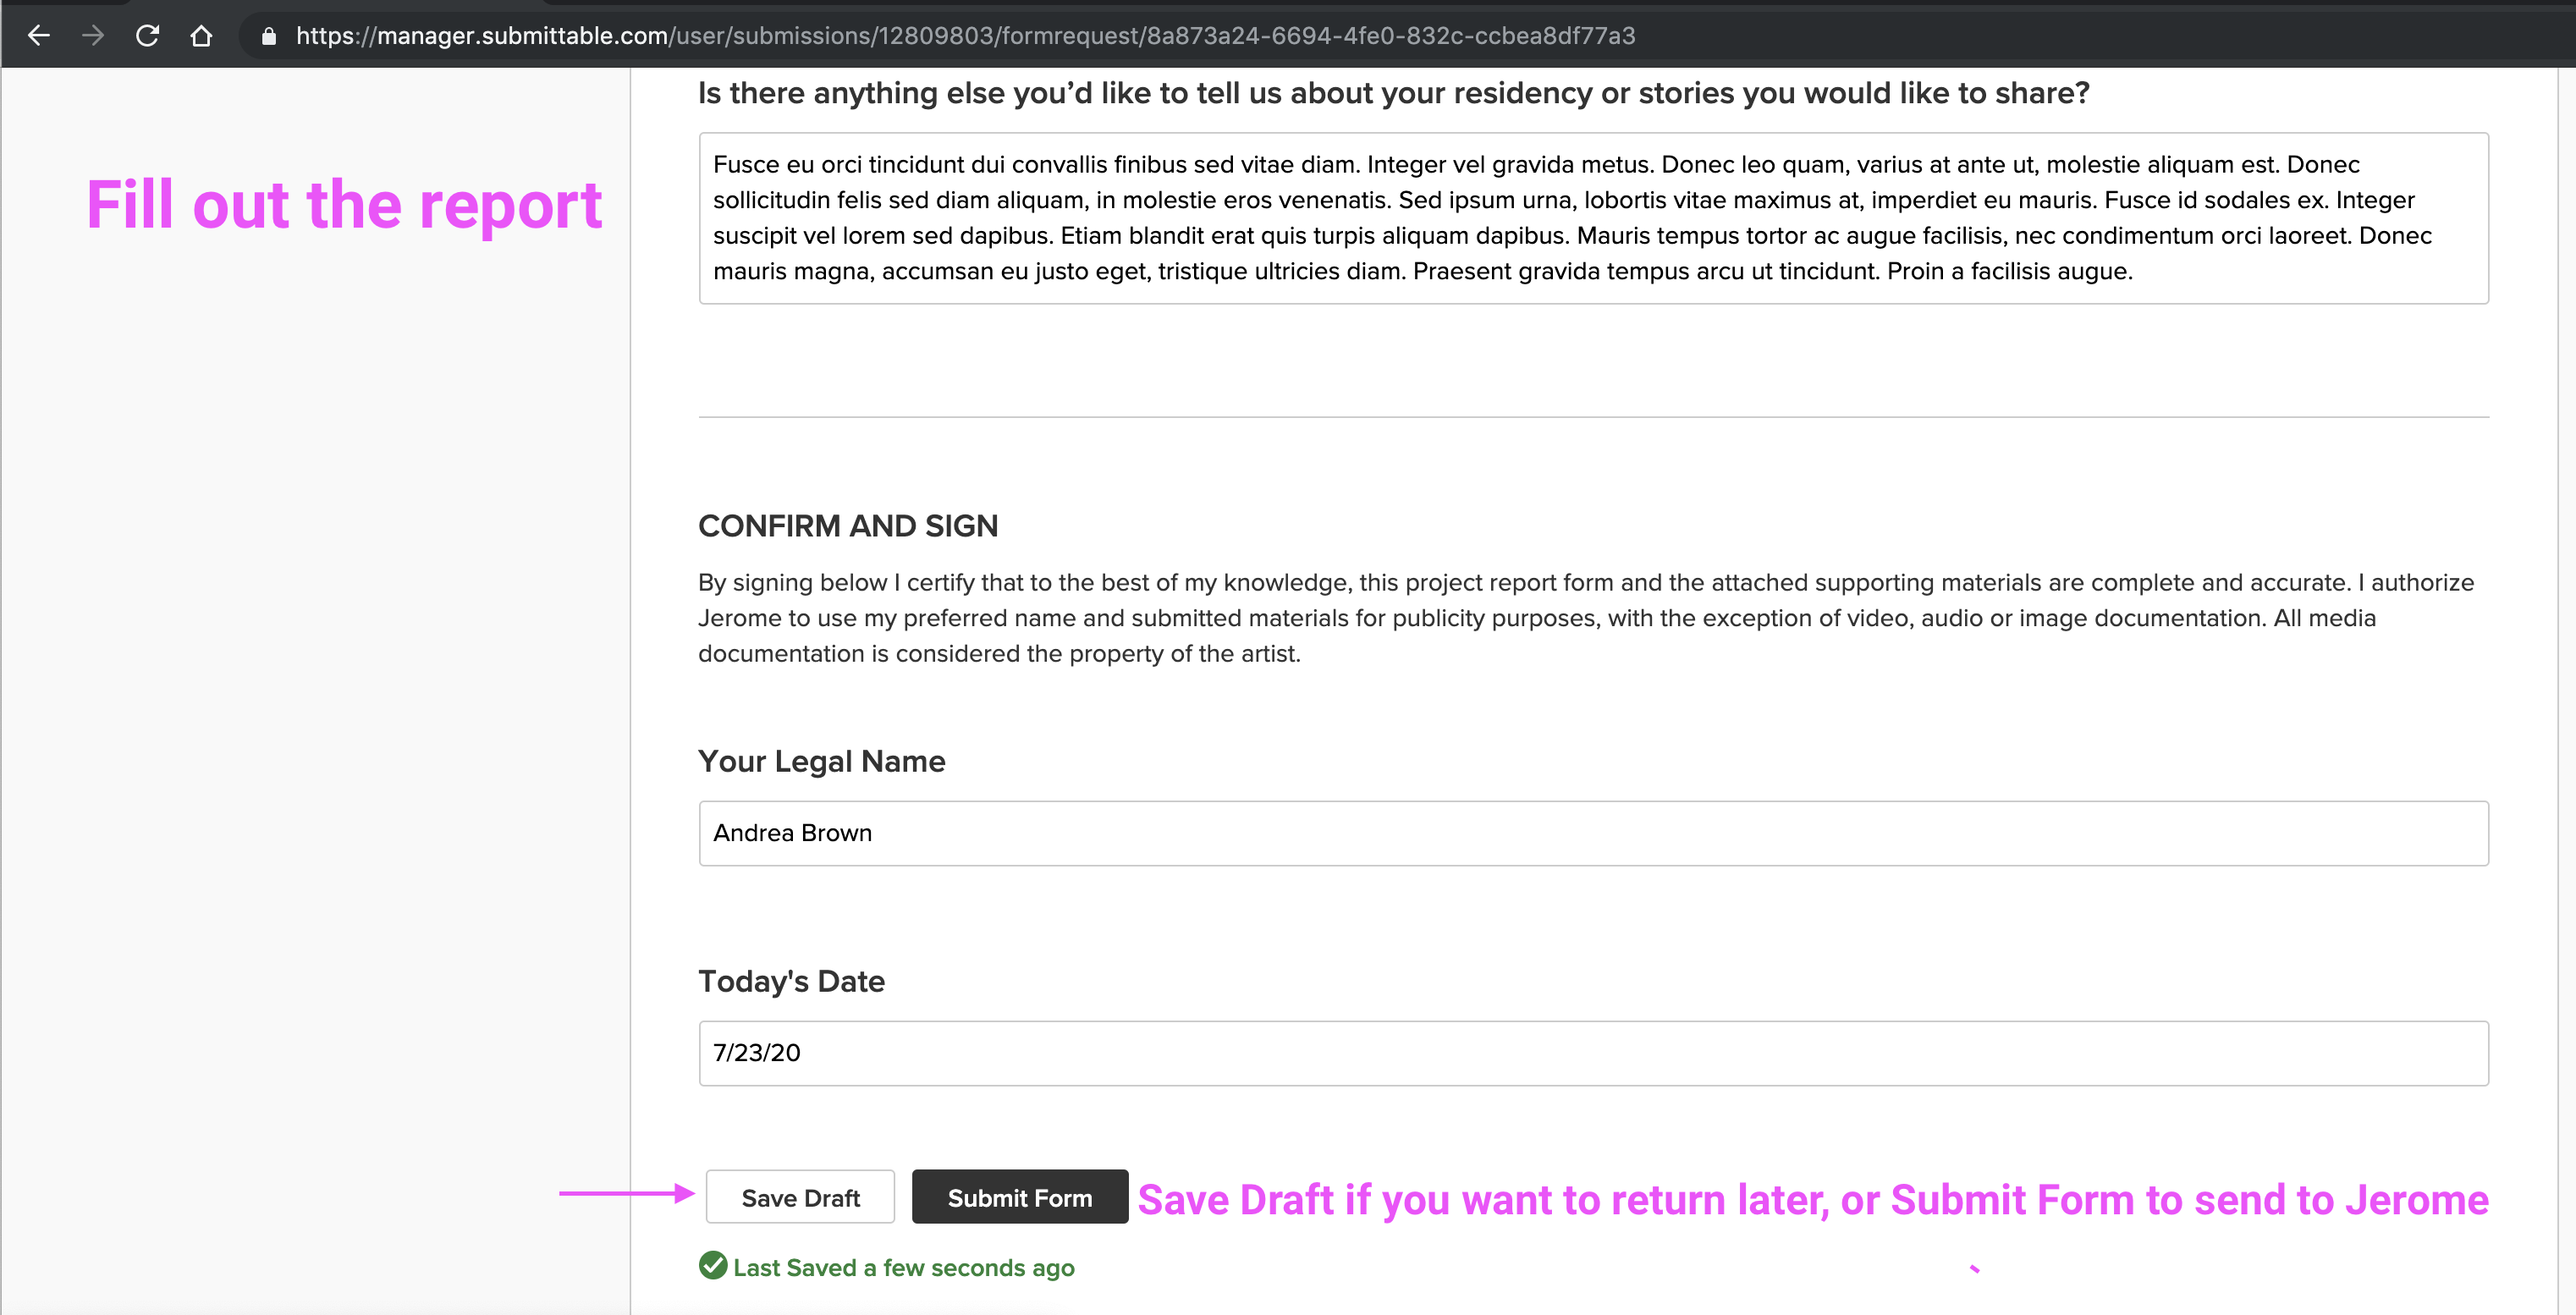 View of the Report on Submittable, showing the Save Draft and Submit Form buttons.